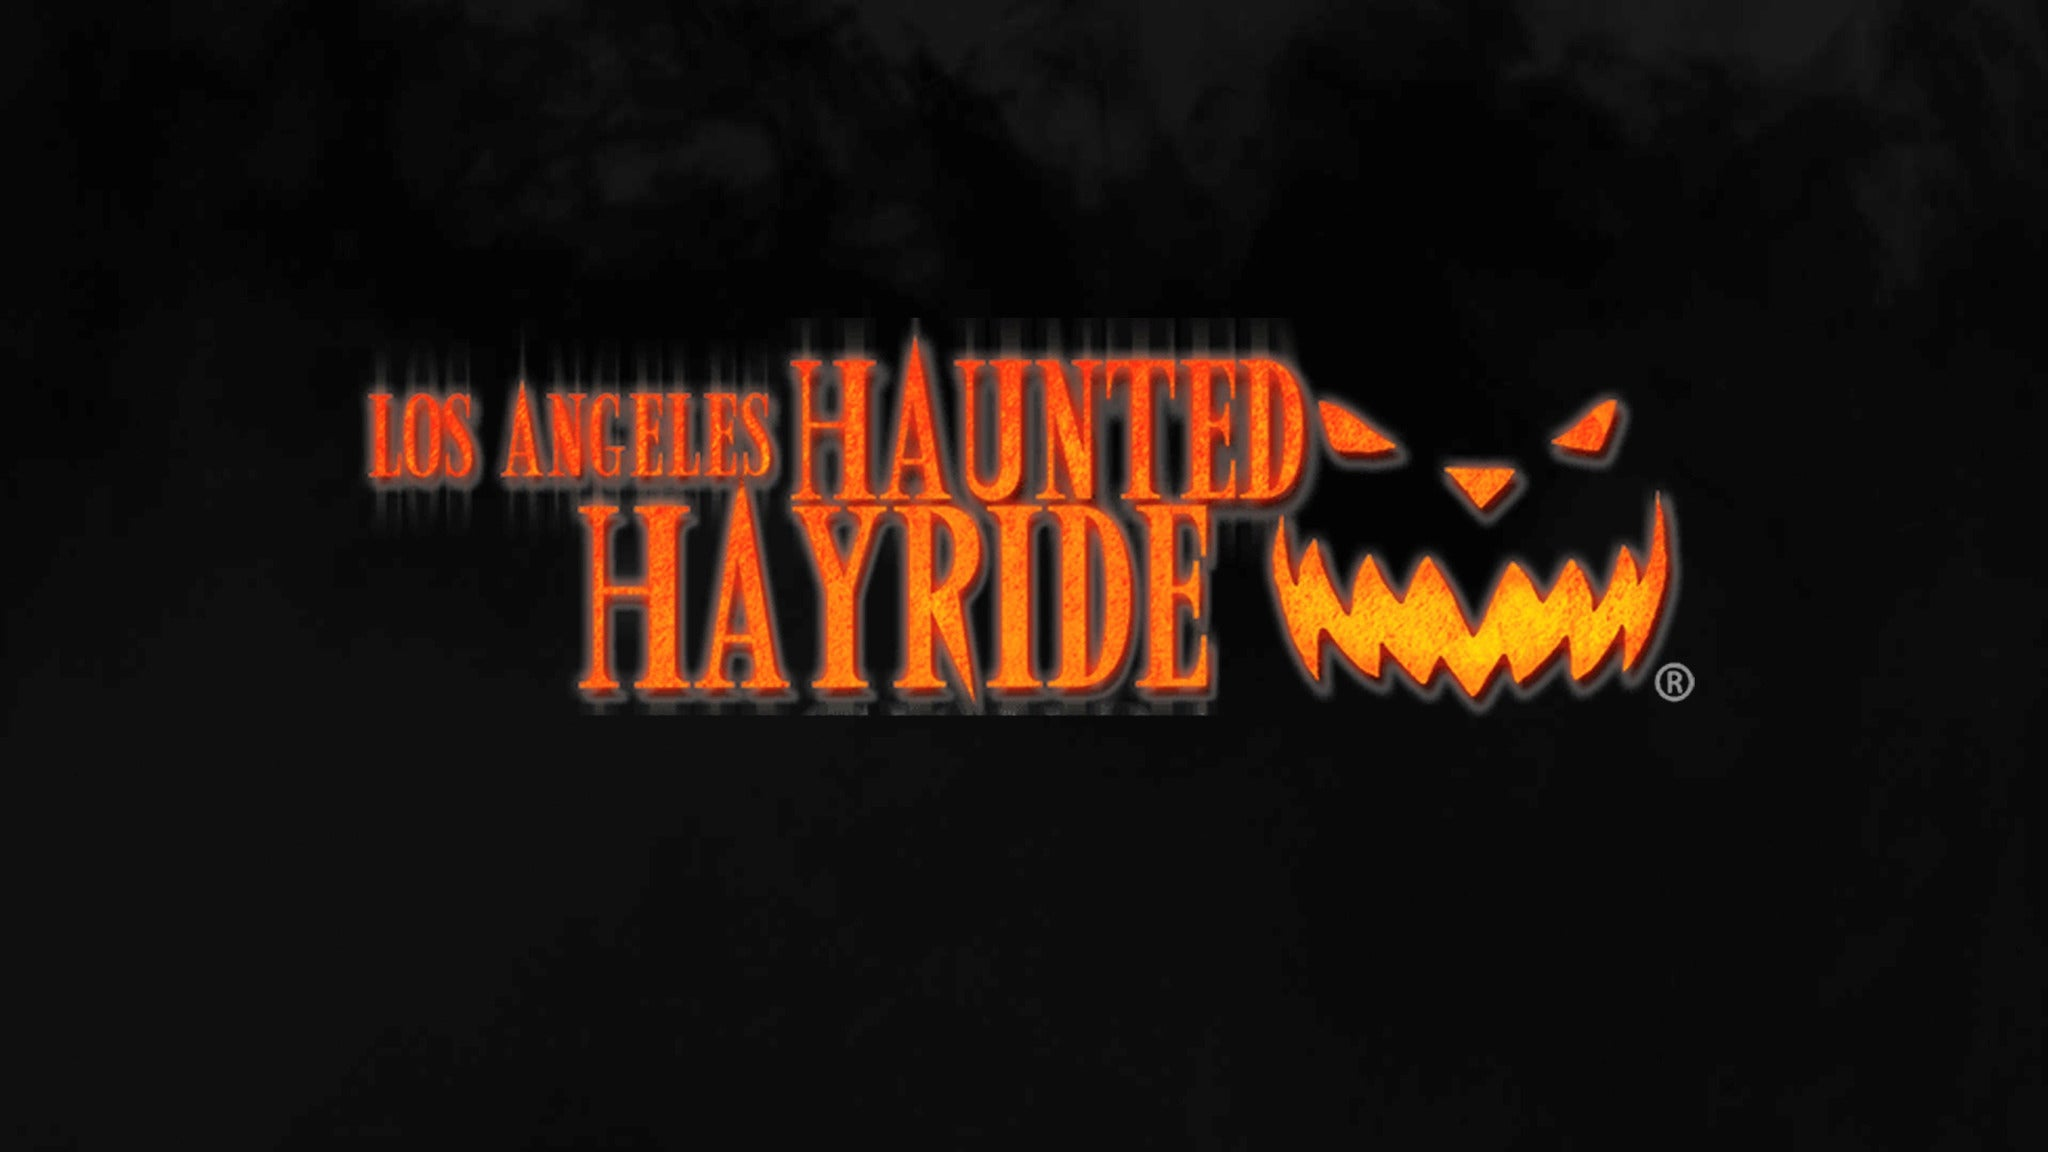 Main image for event titled Los Angeles Haunted Hayride: Live Drive Up Experience - October 19th, 2020